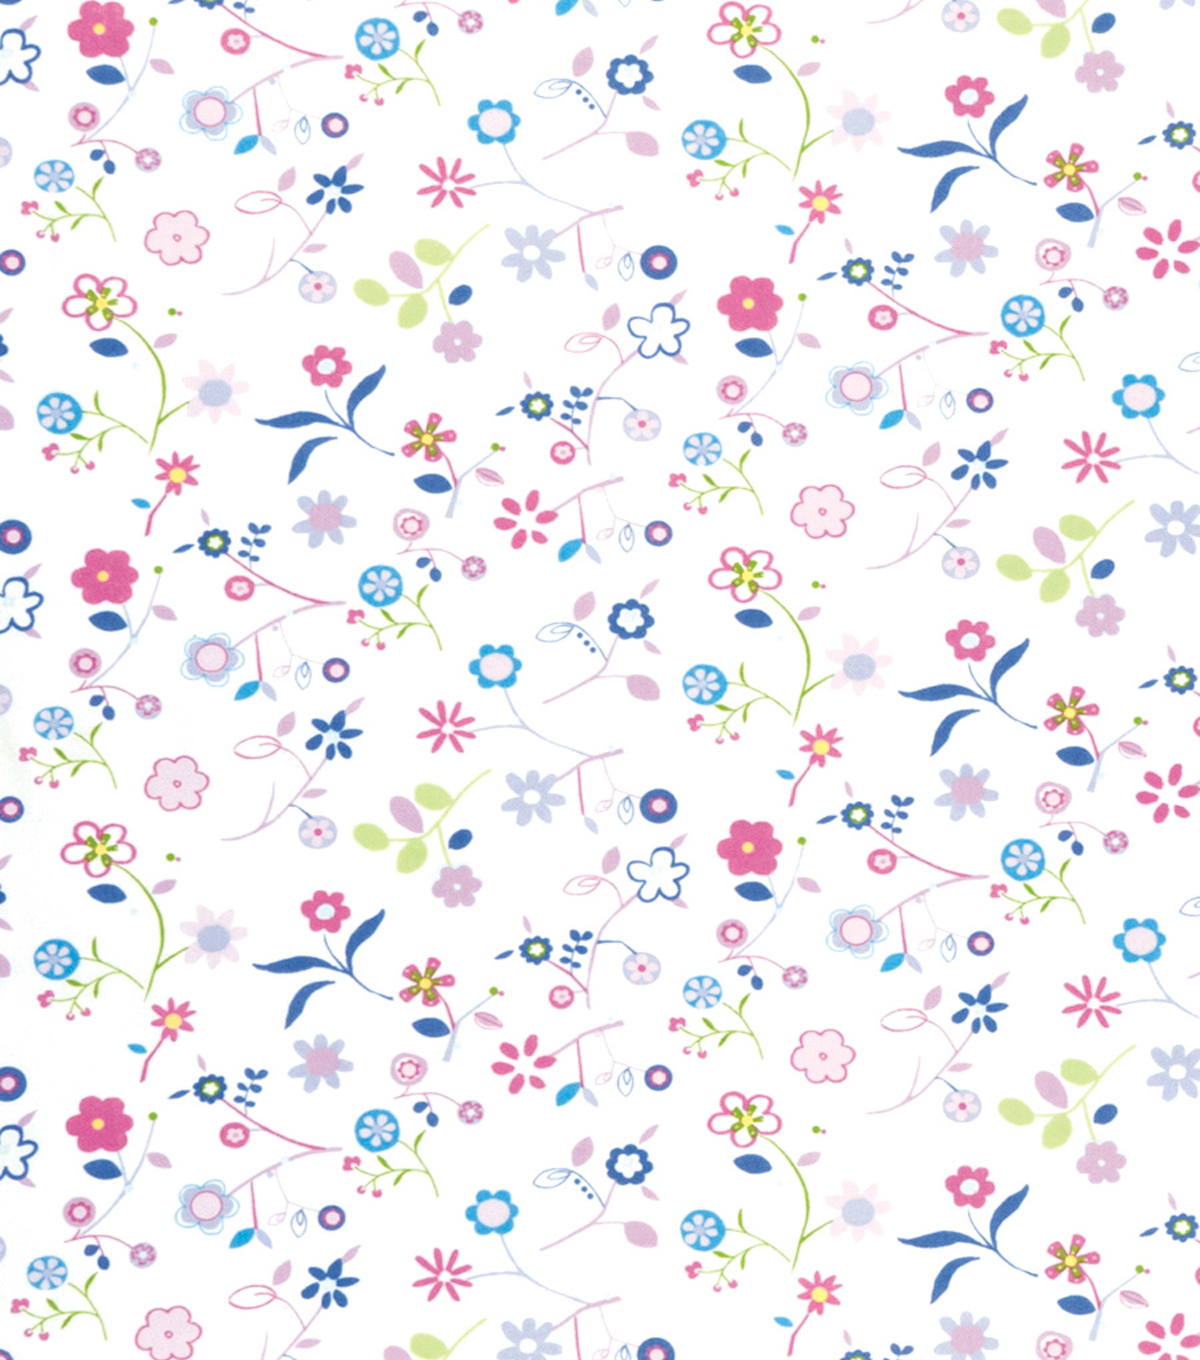 Home Decor 8\u0022x8\u0022 Fabric Swatch-Print Fabric Eaton Square Colombo  Petal